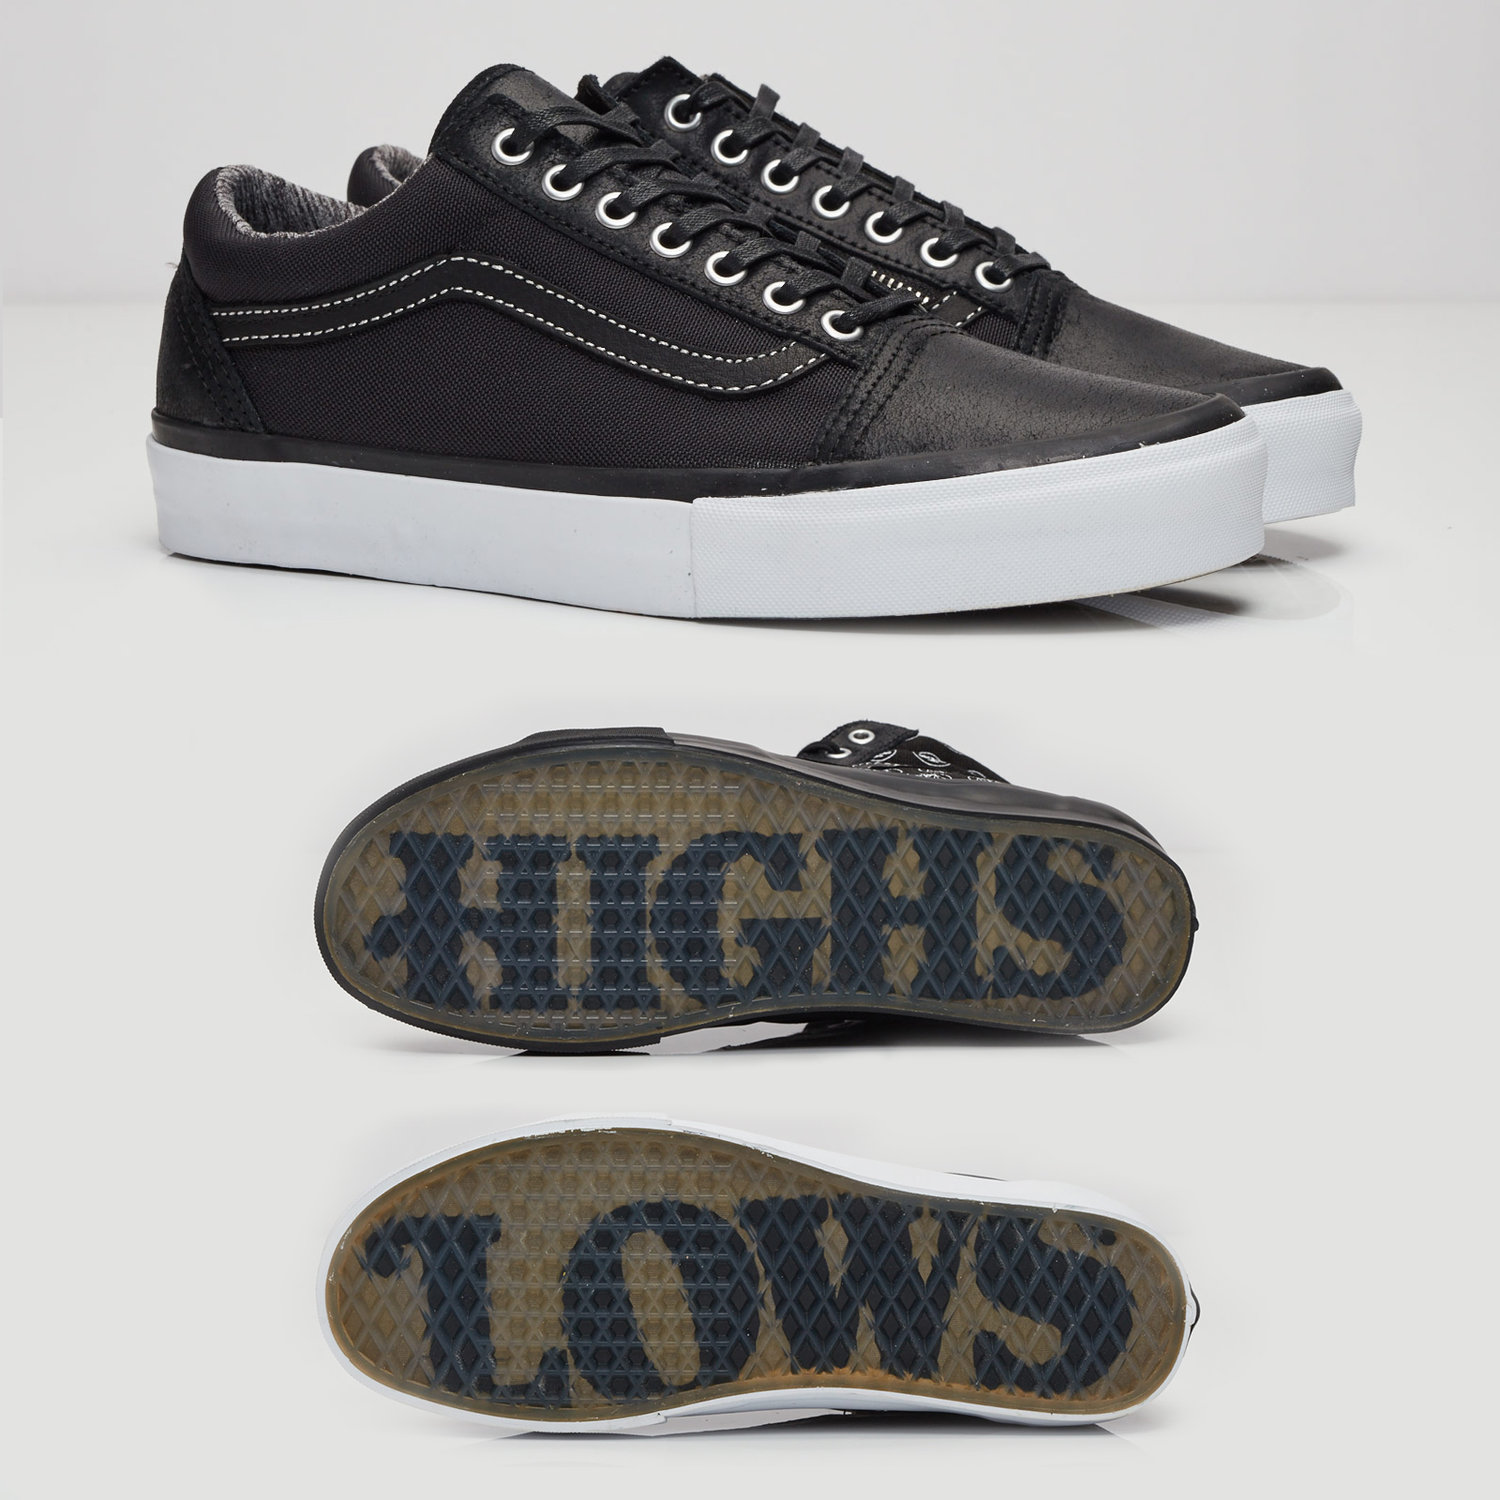 a09f6c068261 Vault by Vans x Highs   Lows Old Skool Zip and Sk8 Hi LX — strictly waffles.